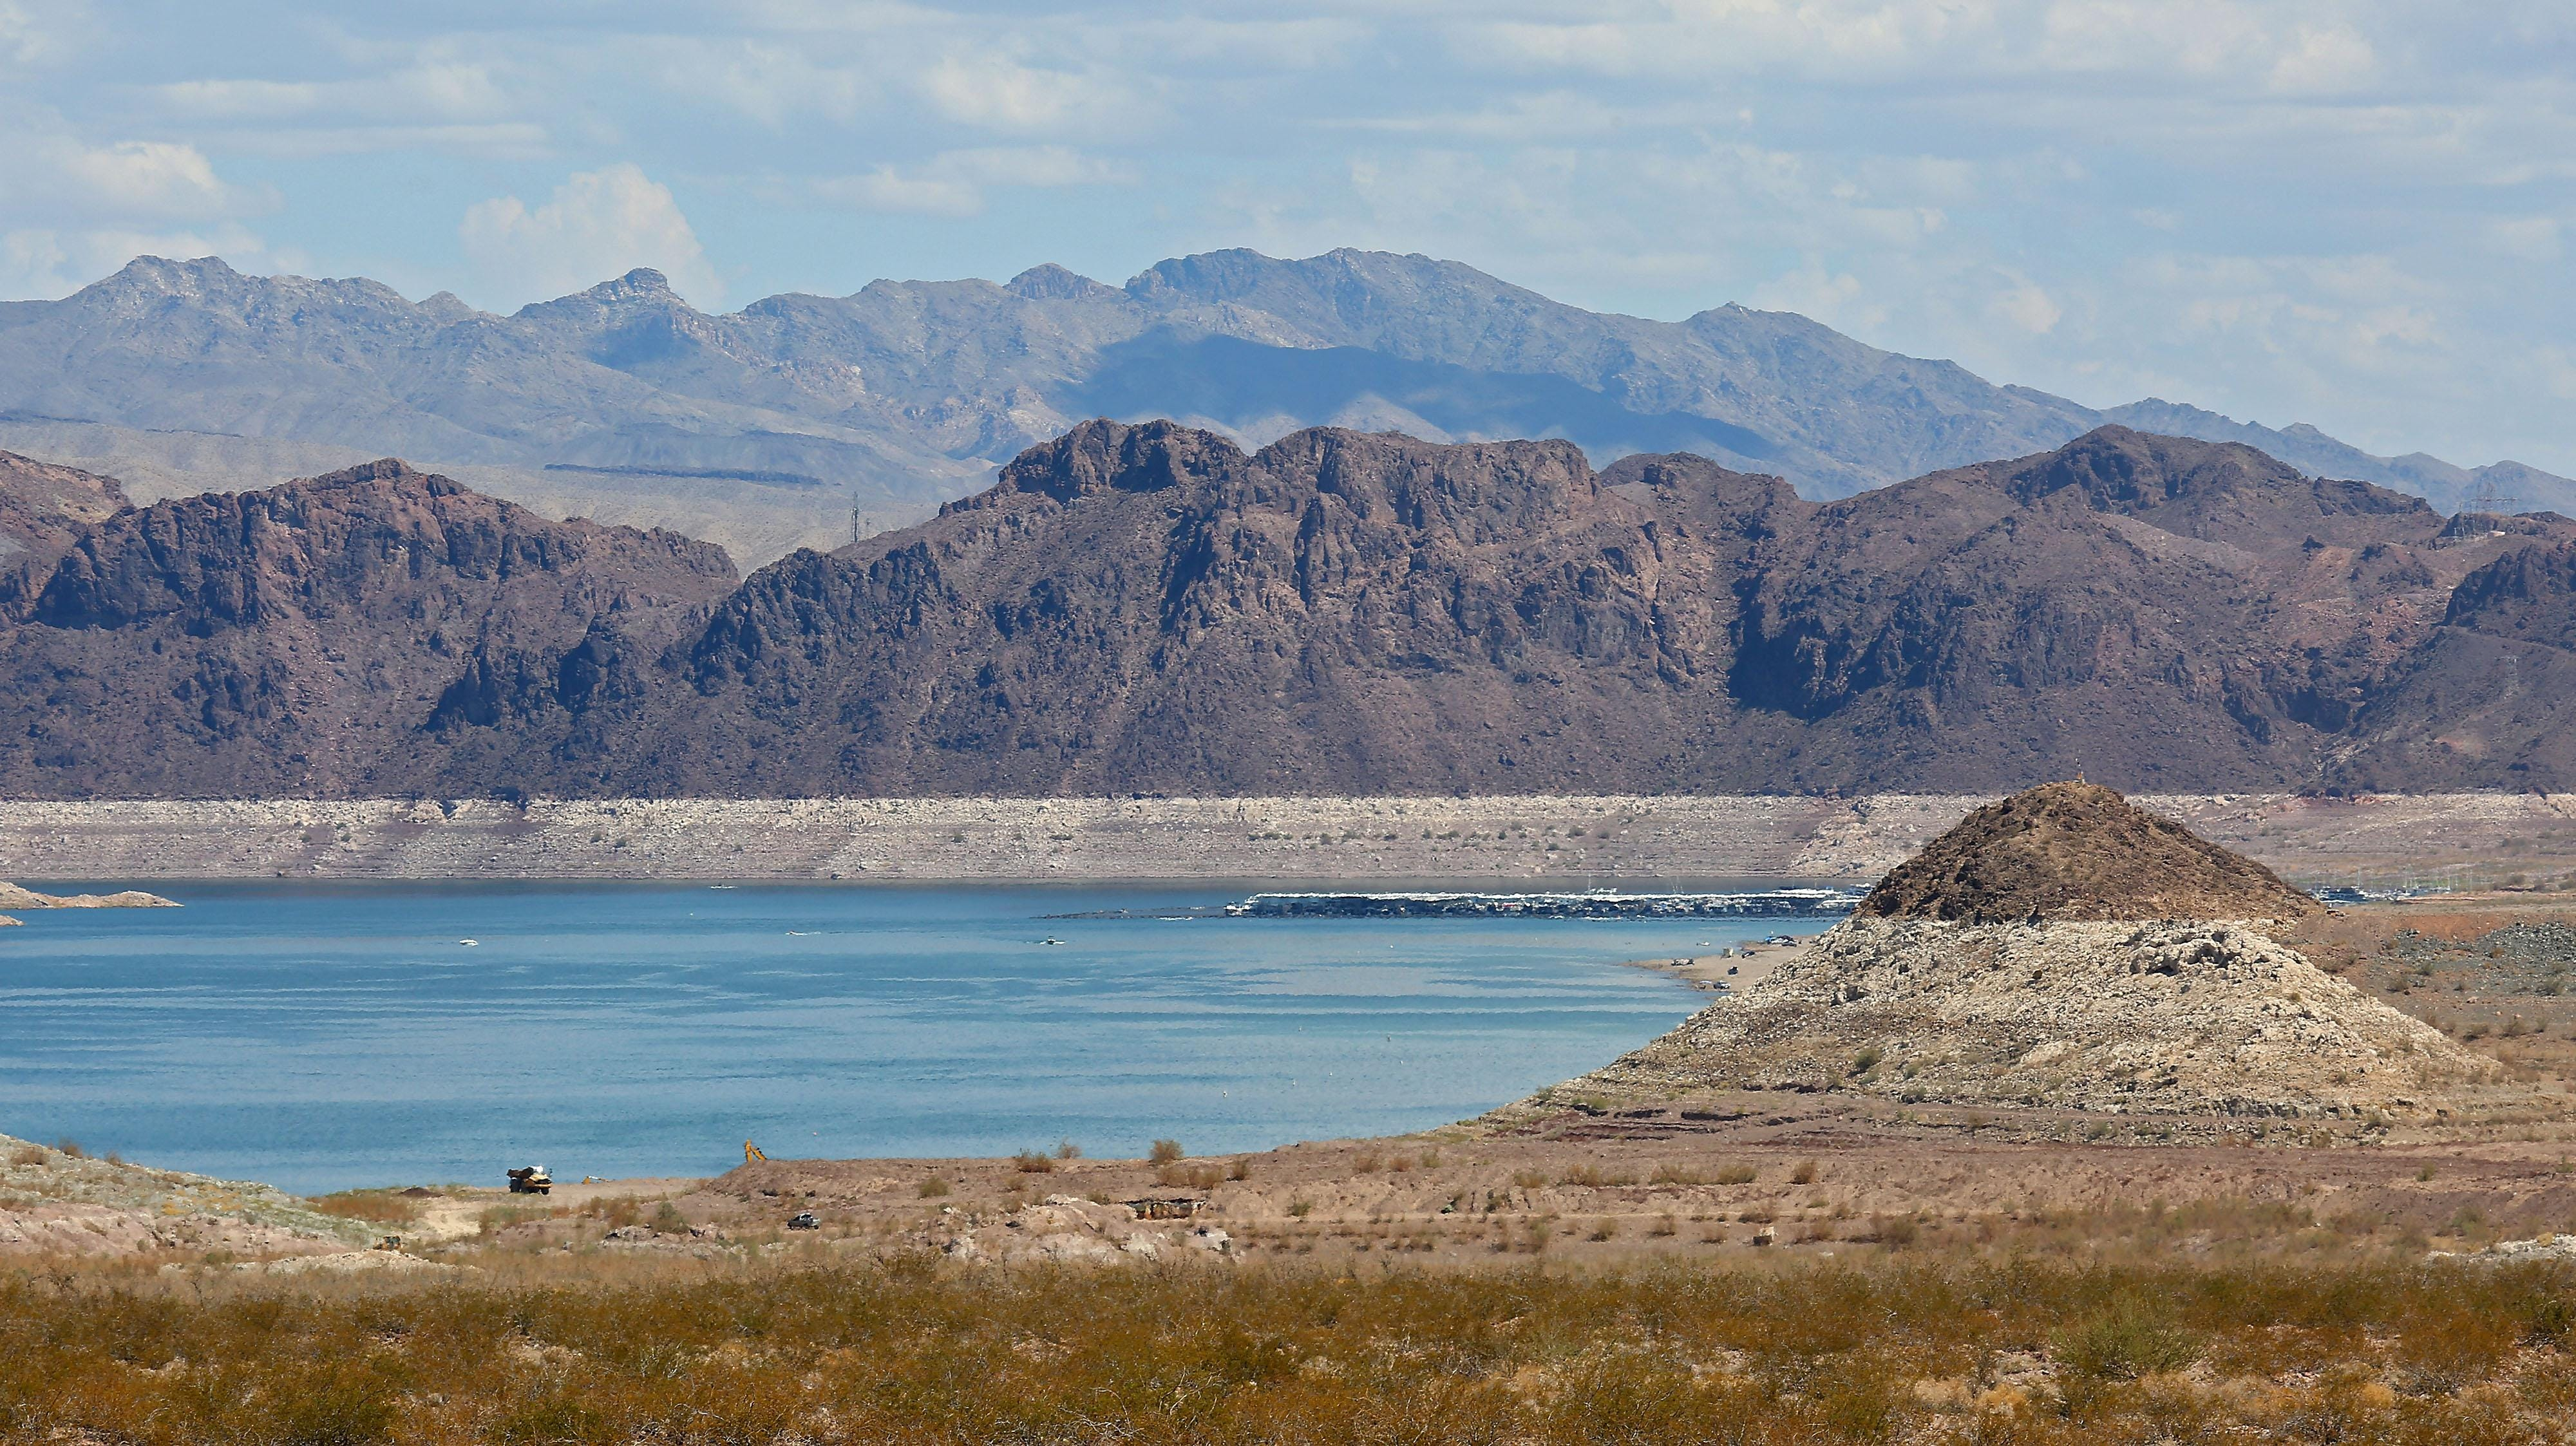 Lake Mead has been declining for years, with the reservoir's level reaching record lows.